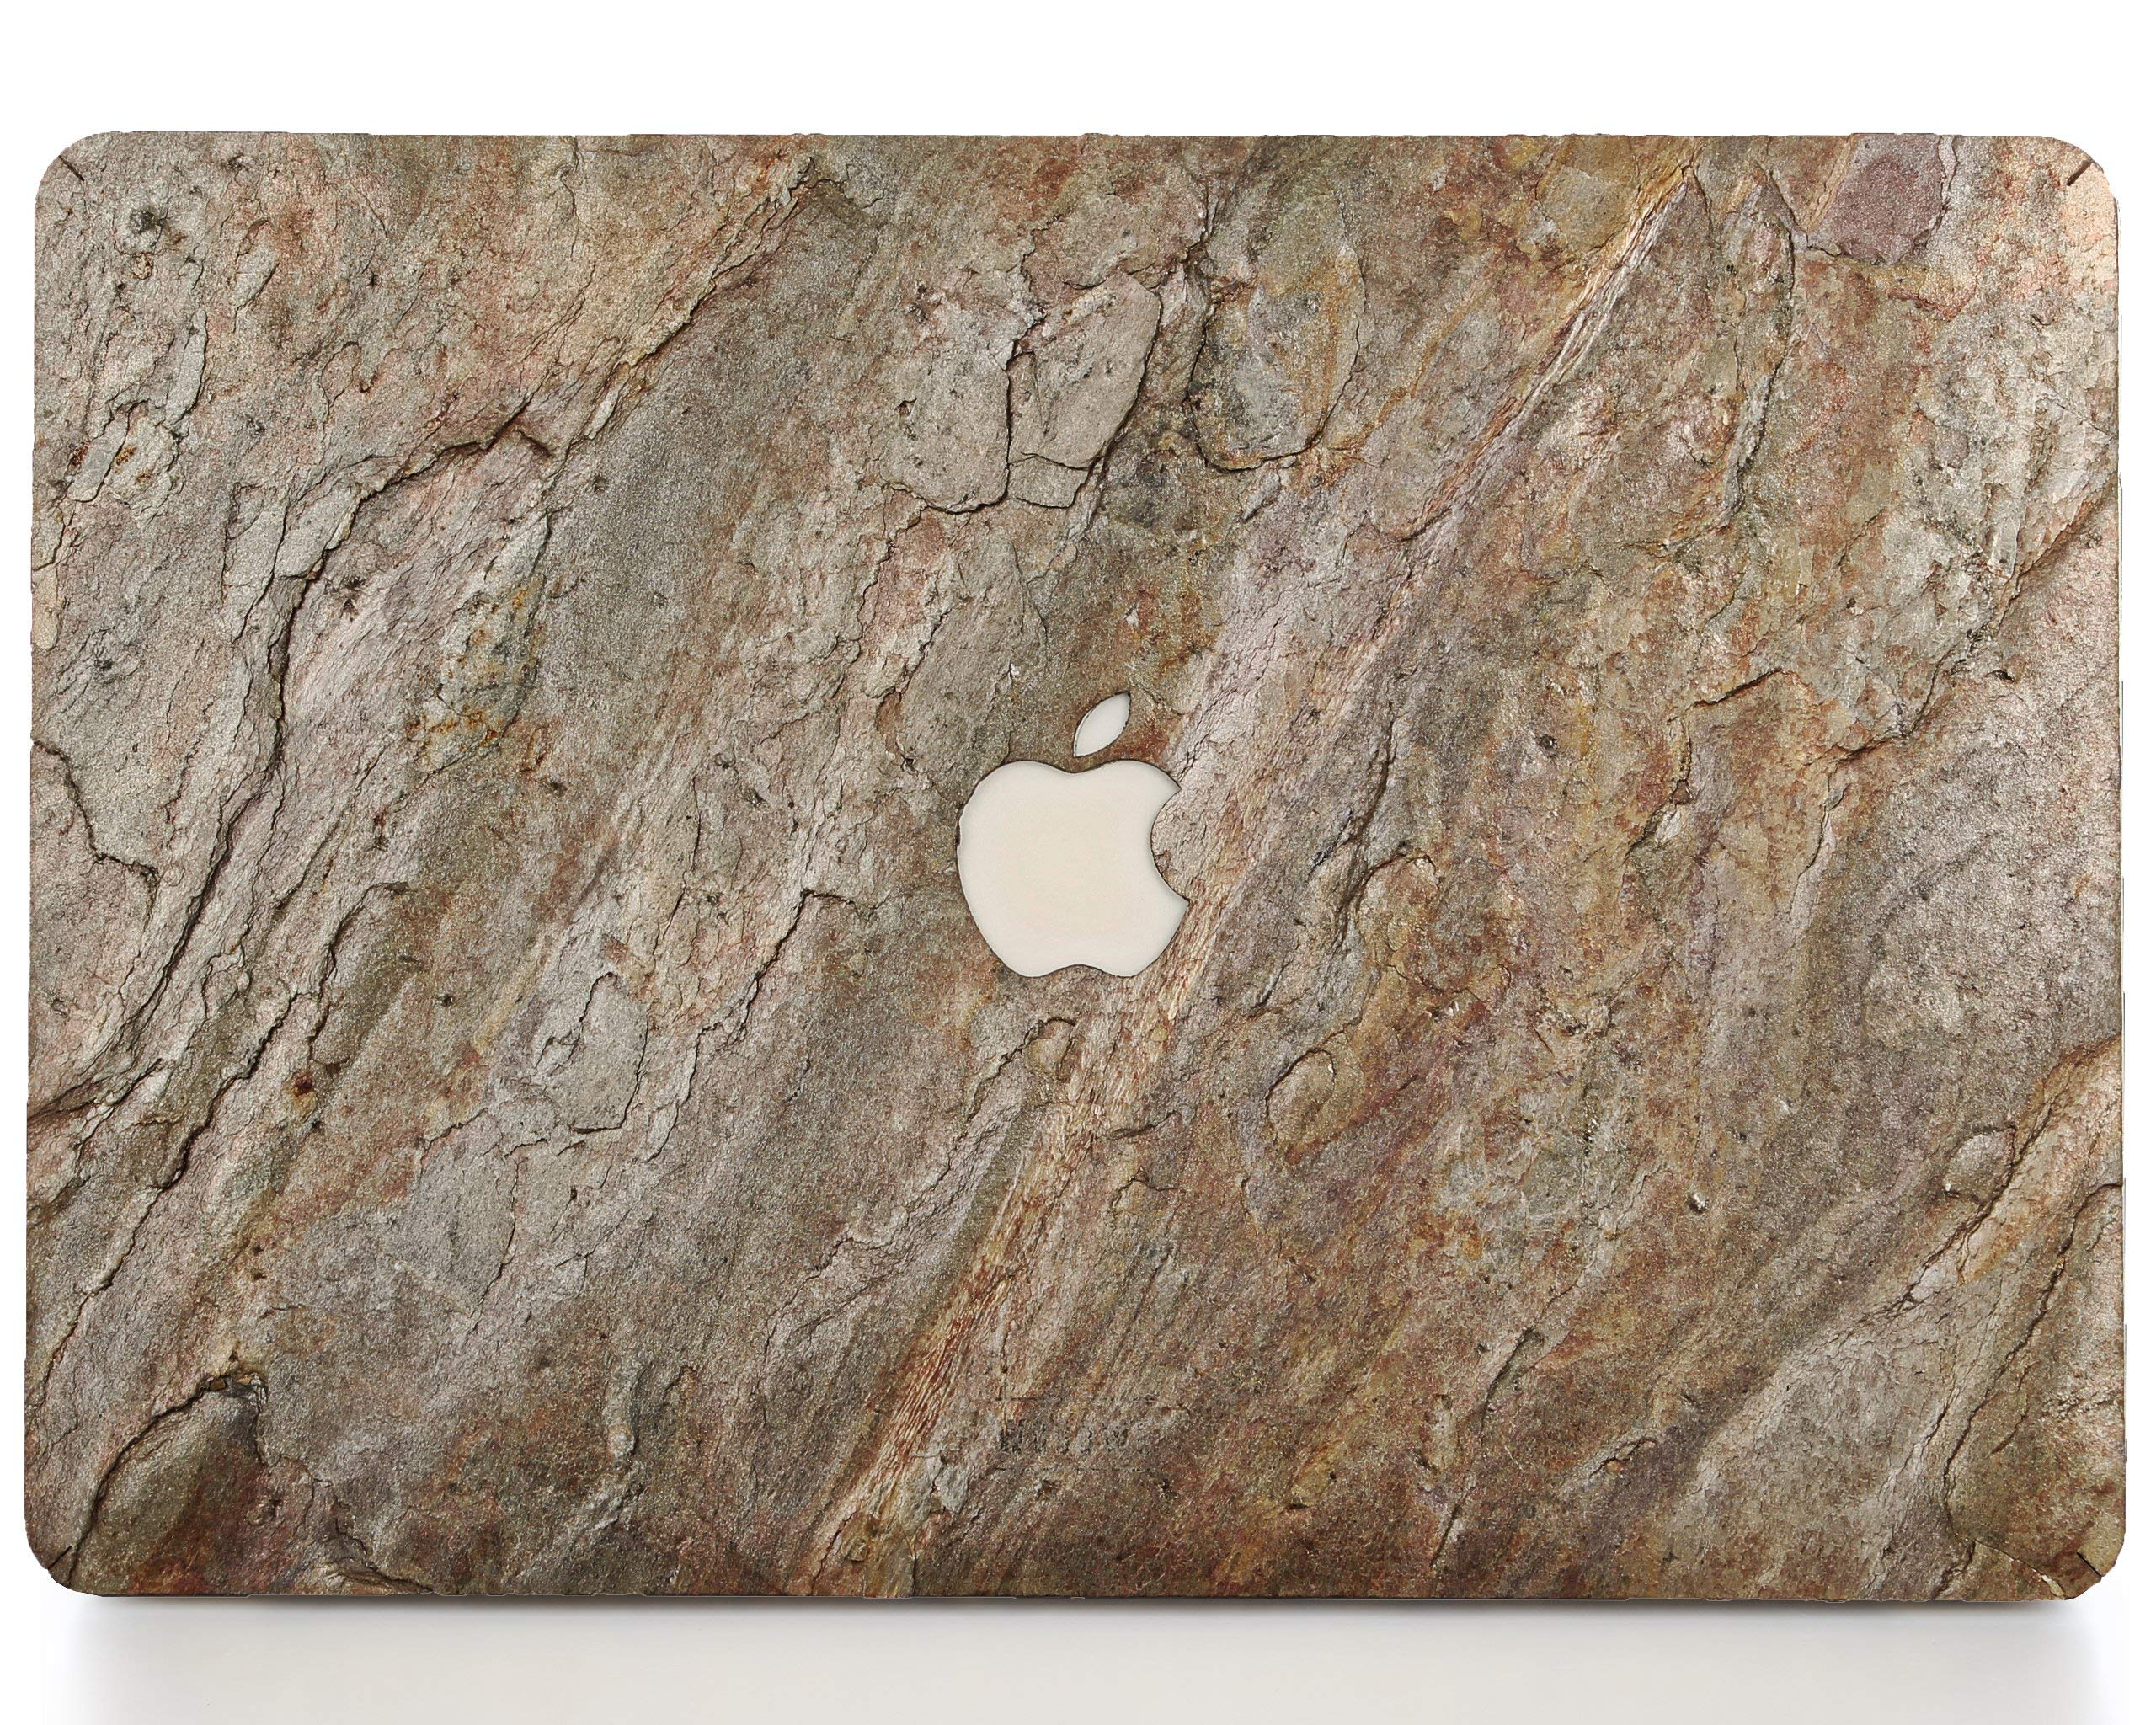 WOODWE Real Stone MacBook Skin for Mac Pro 13 inch Retina Display | Model: A1425/A1502; Late 2012 - Early 2015 | Natural Burning Forest Stone | TOP&Bottom